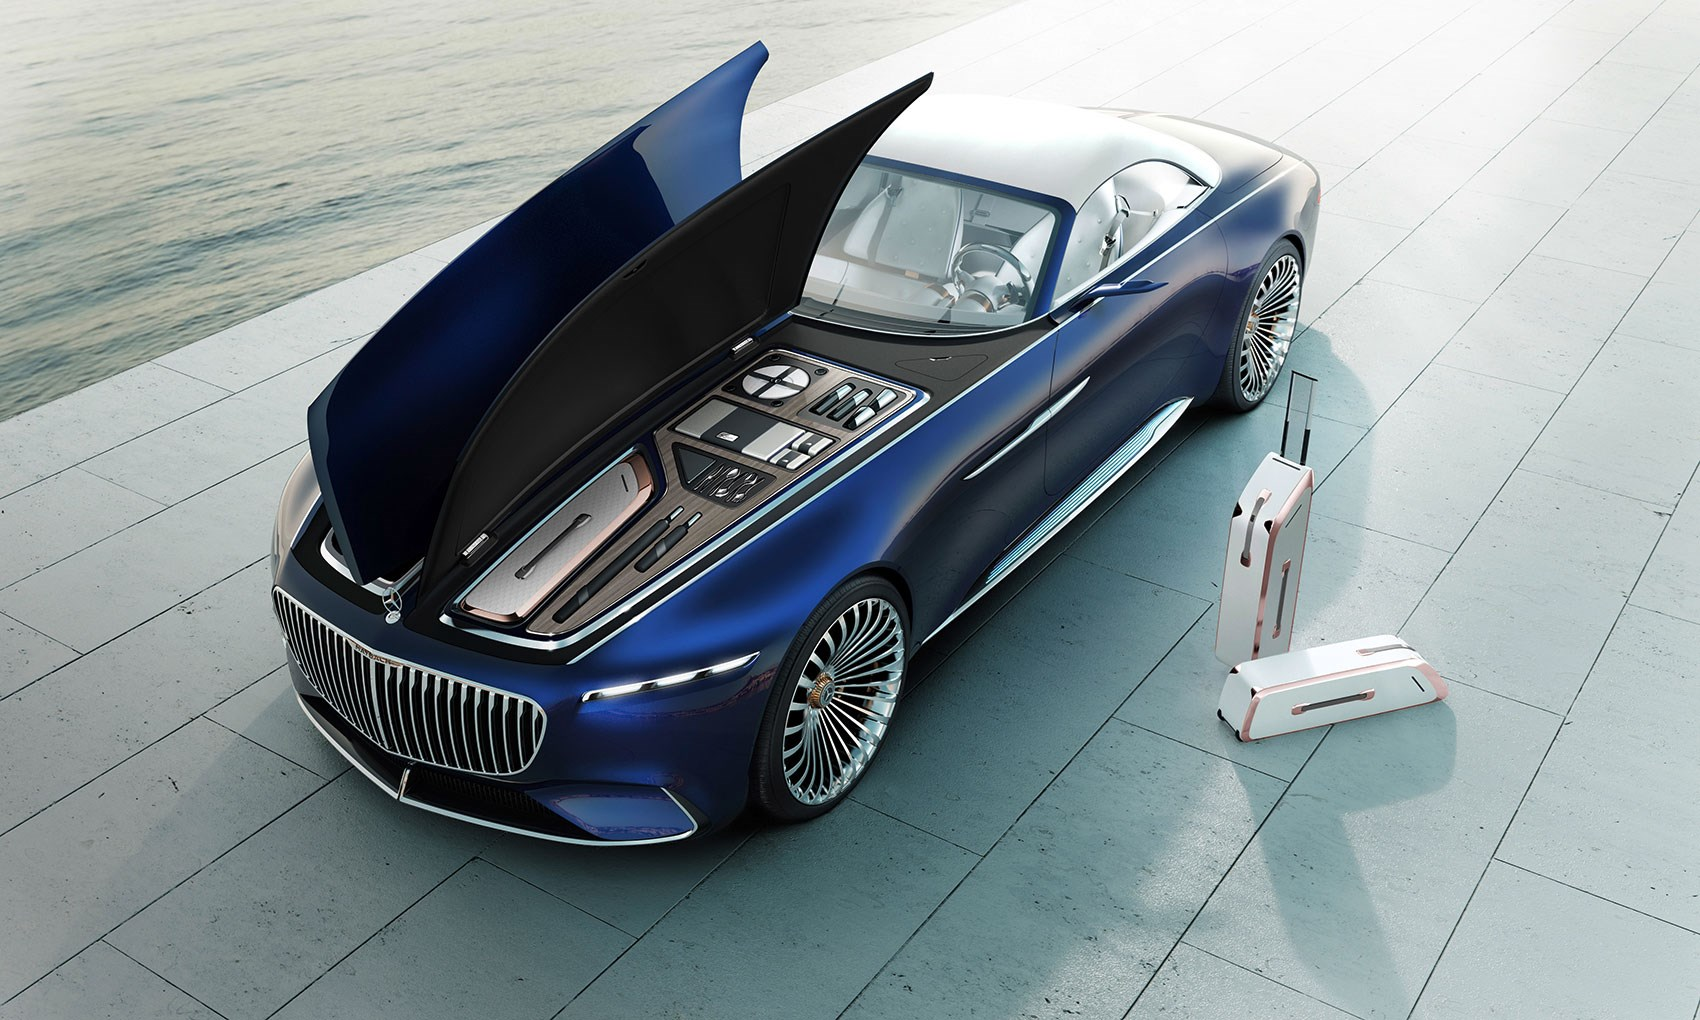 Stunning Luggage And Picnic Set Under Vision Mercedes Maybach 6 Cabriolet S Bonnet